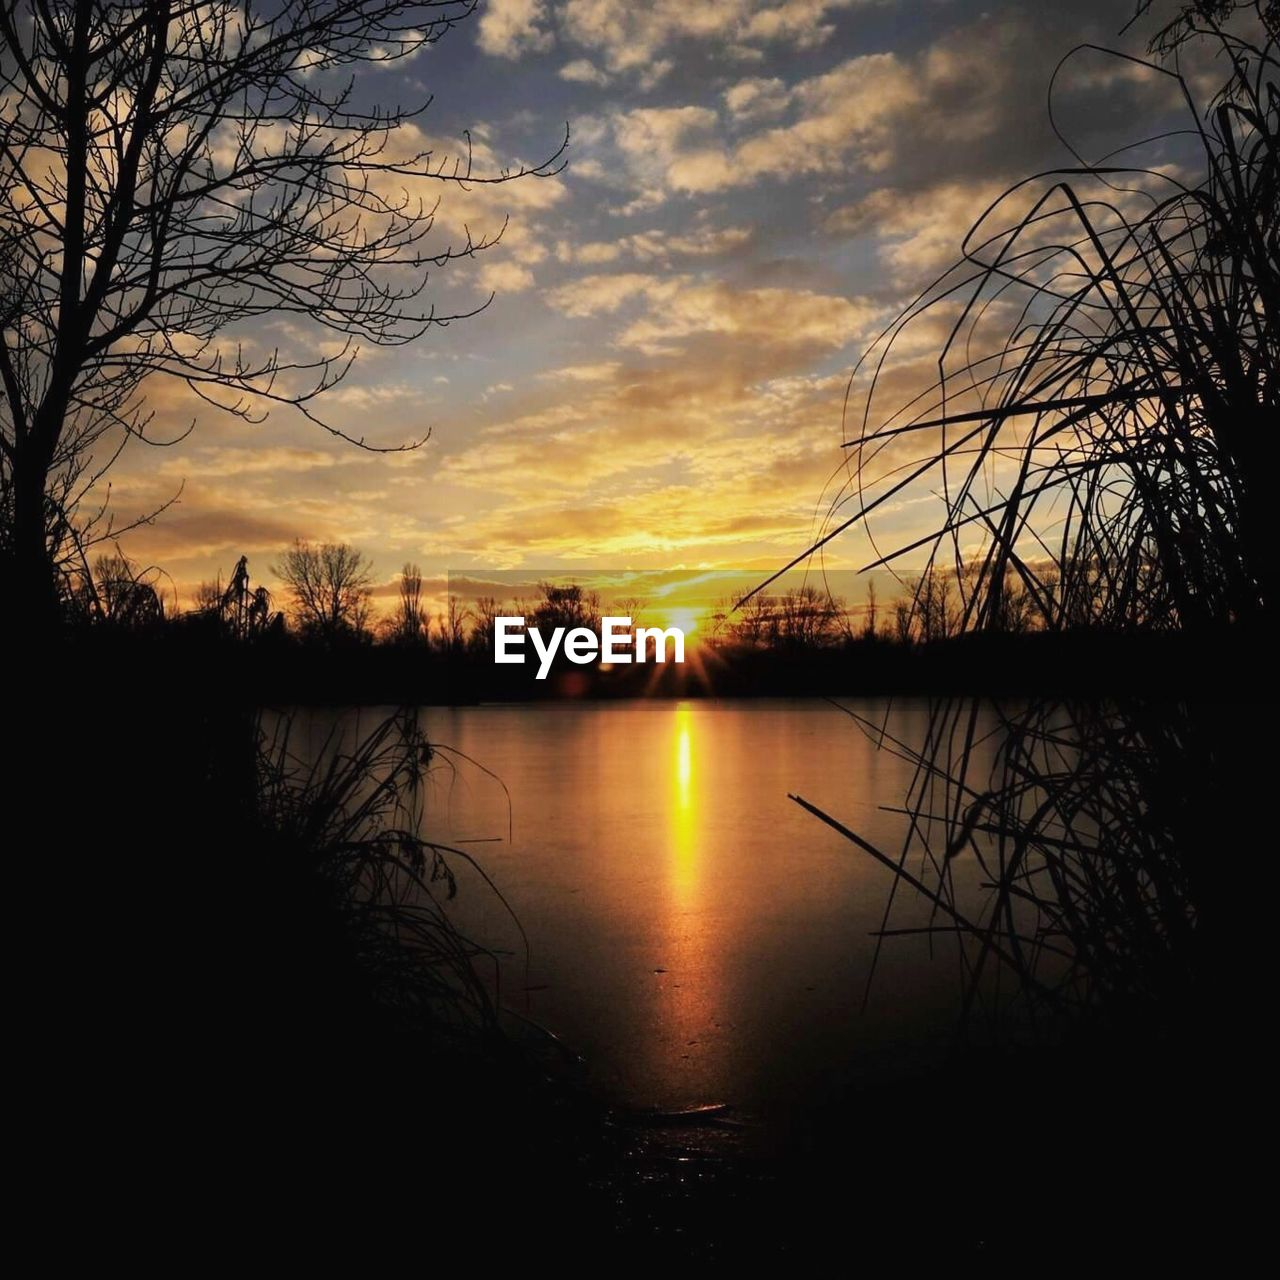 sunset, tranquil scene, scenics, tranquility, beauty in nature, nature, water, reflection, sky, lake, silhouette, orange color, bare tree, tree, no people, idyllic, cloud - sky, majestic, outdoors, sun, branch, day